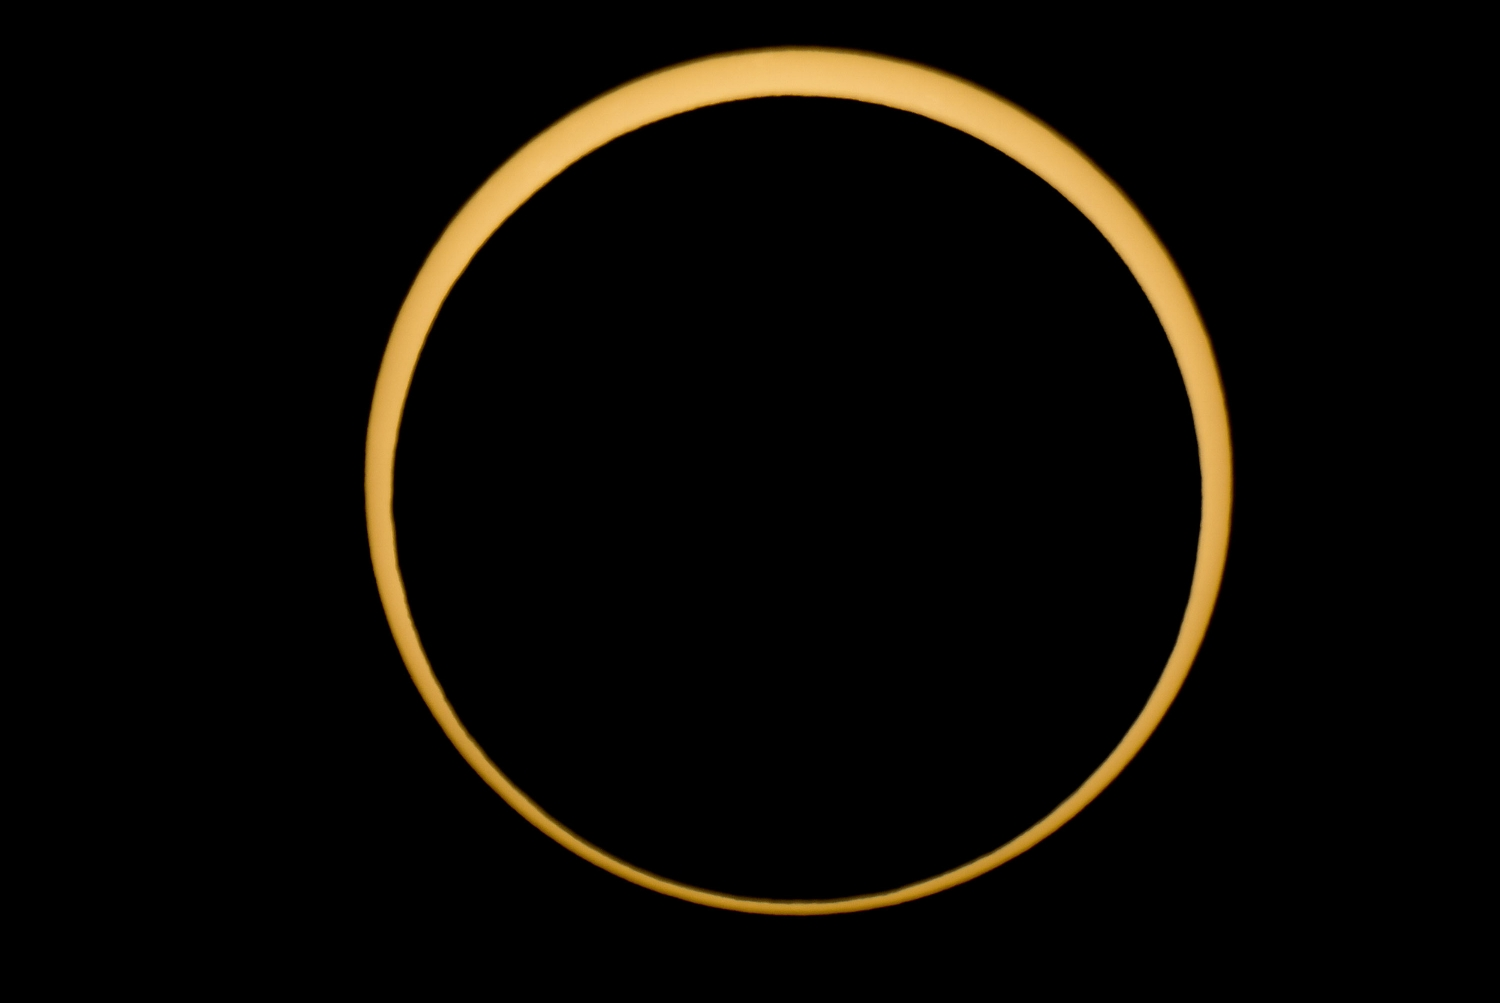 The moon is silhouetted against the sun in this annular solar eclipse near McCloud, CA on Sunday, May 20, 2012. Unlike a total solar eclipse, the sun is not completely obscured due to the moon's greater distance from the earth.